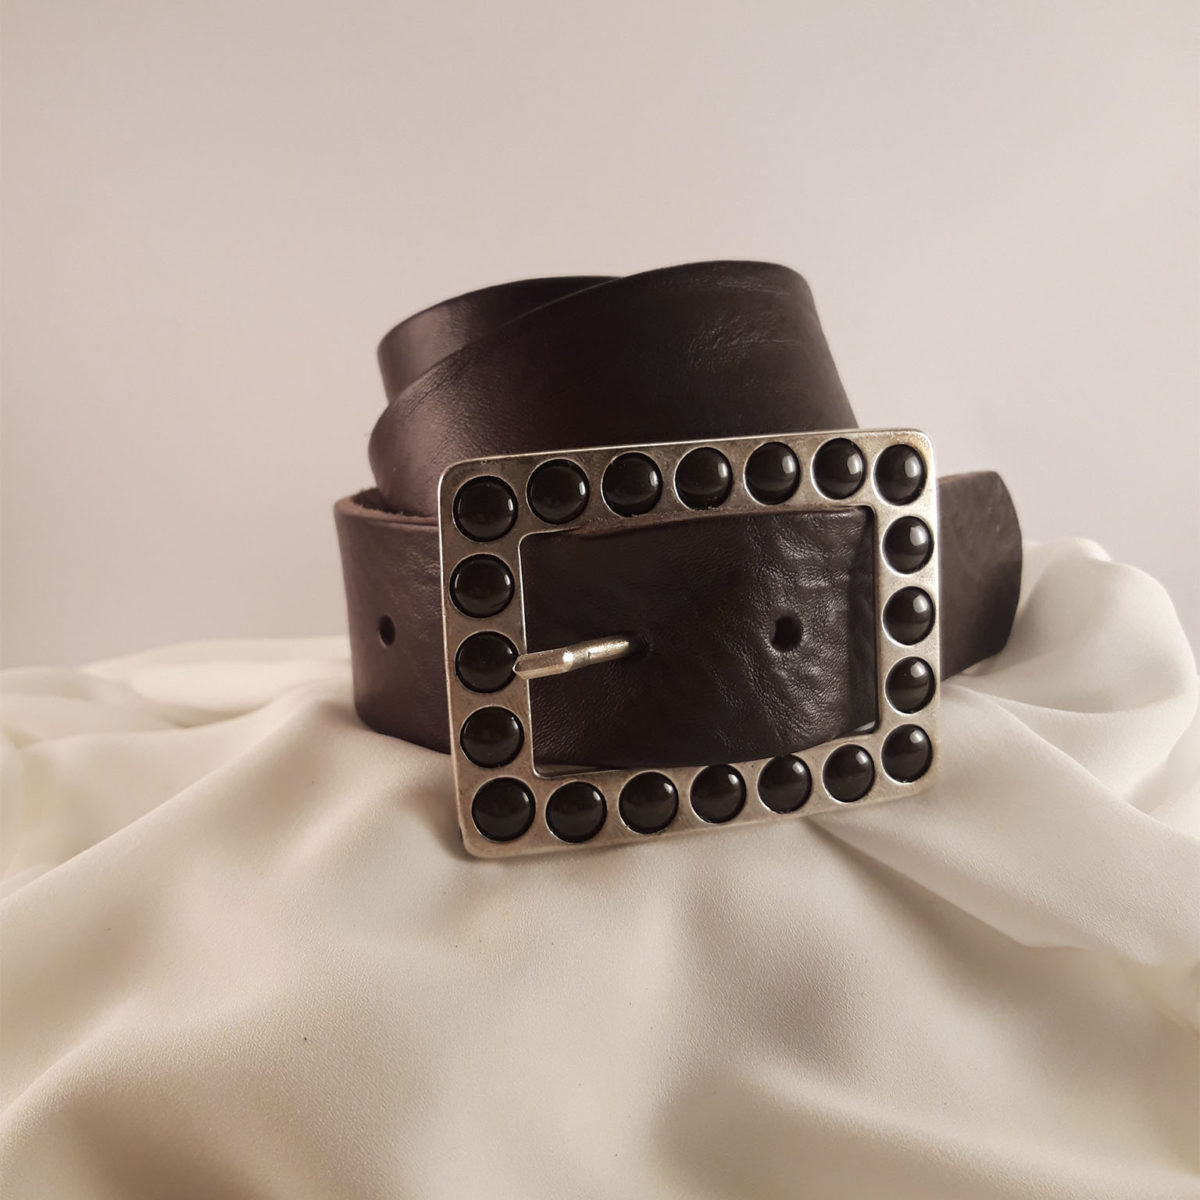 Brown Leather Belt With Square Buckle And Polka Dots